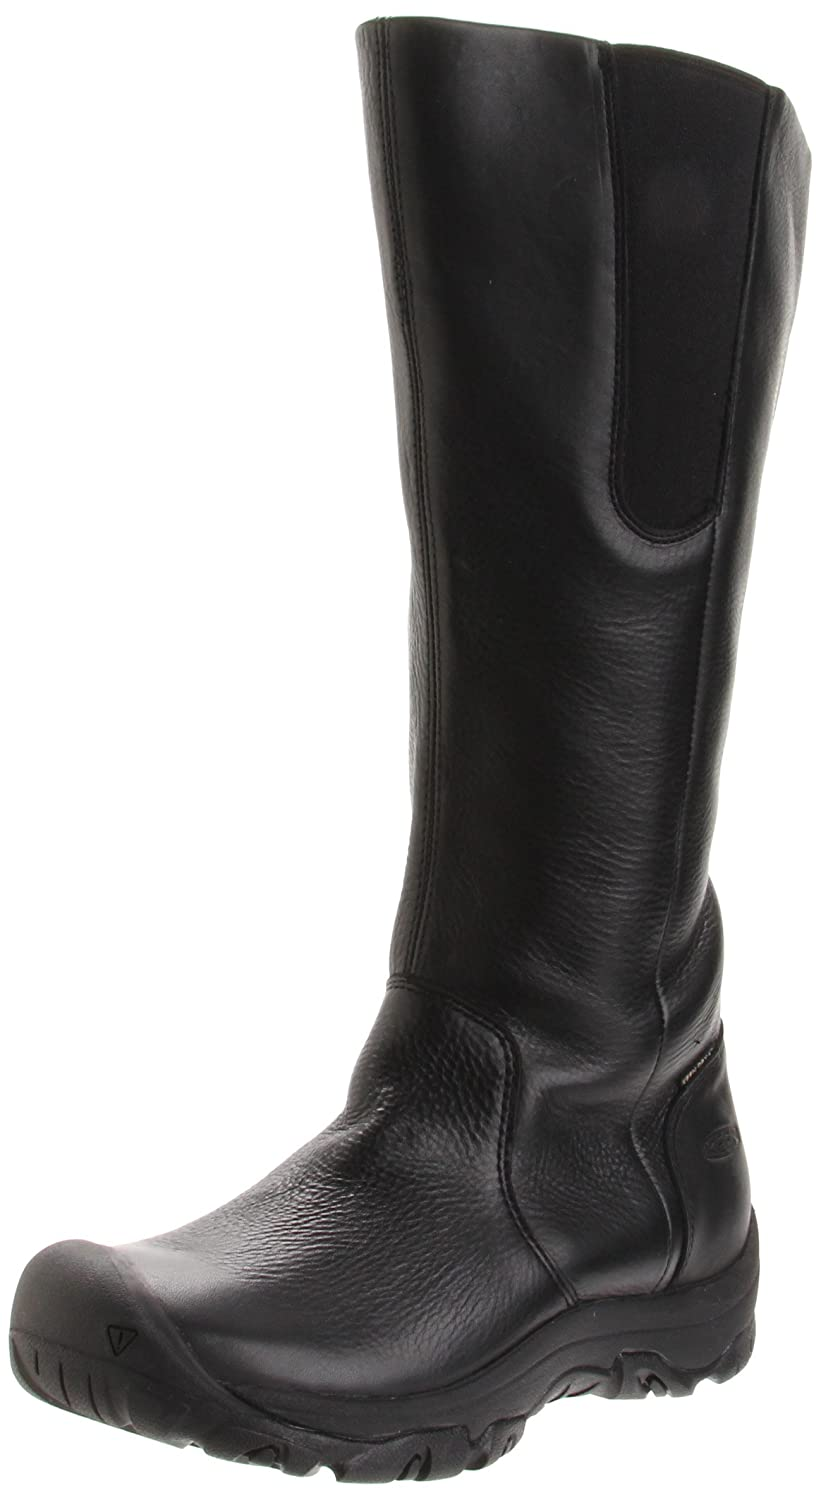 To acquire Stylish best waterproof winter boots picture trends